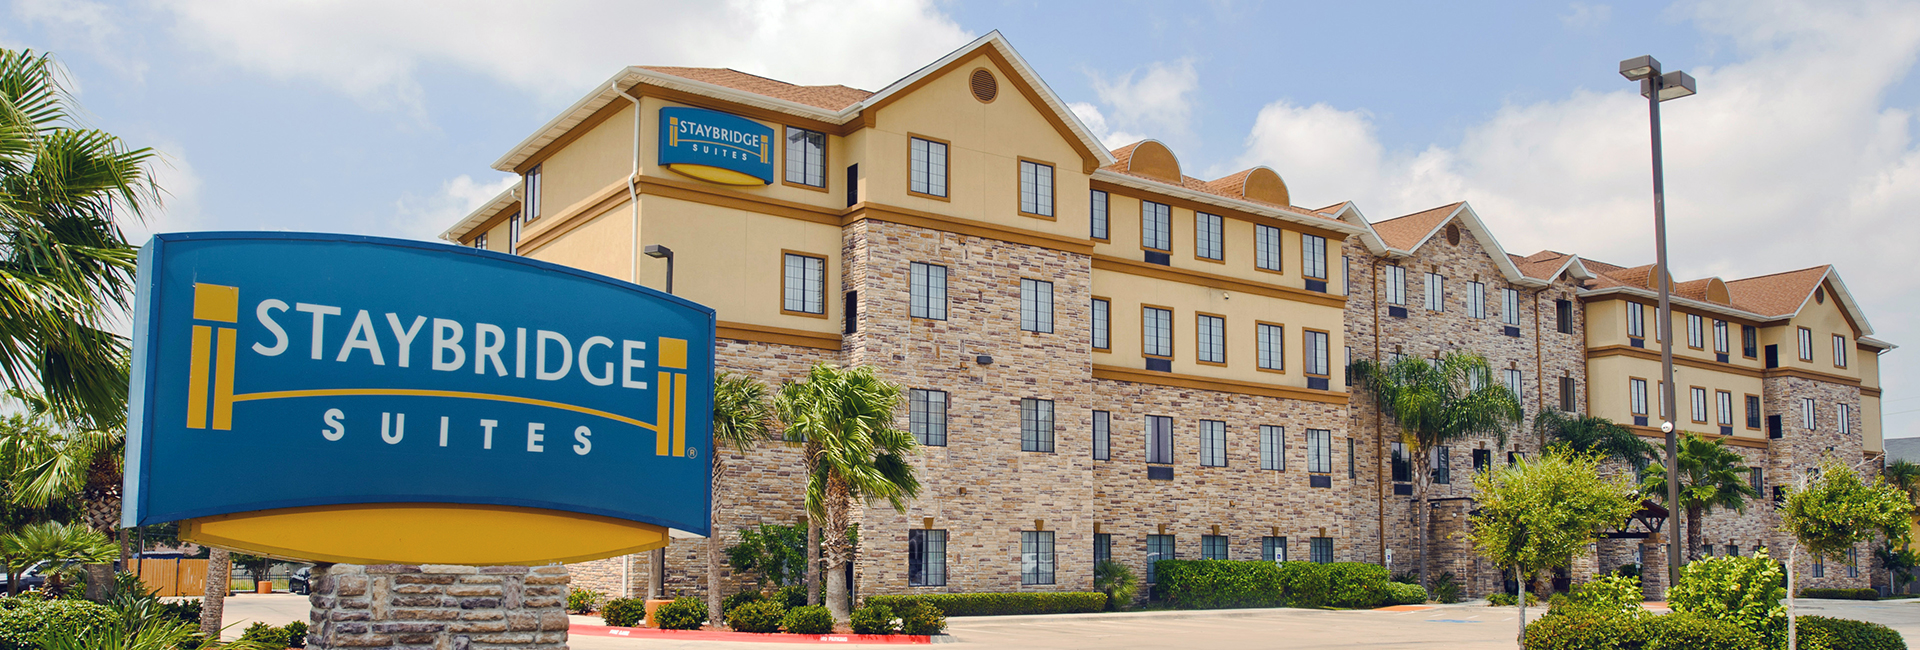 STAYBRIDGE SUITES CORPUS CHRISTI, TEXAS